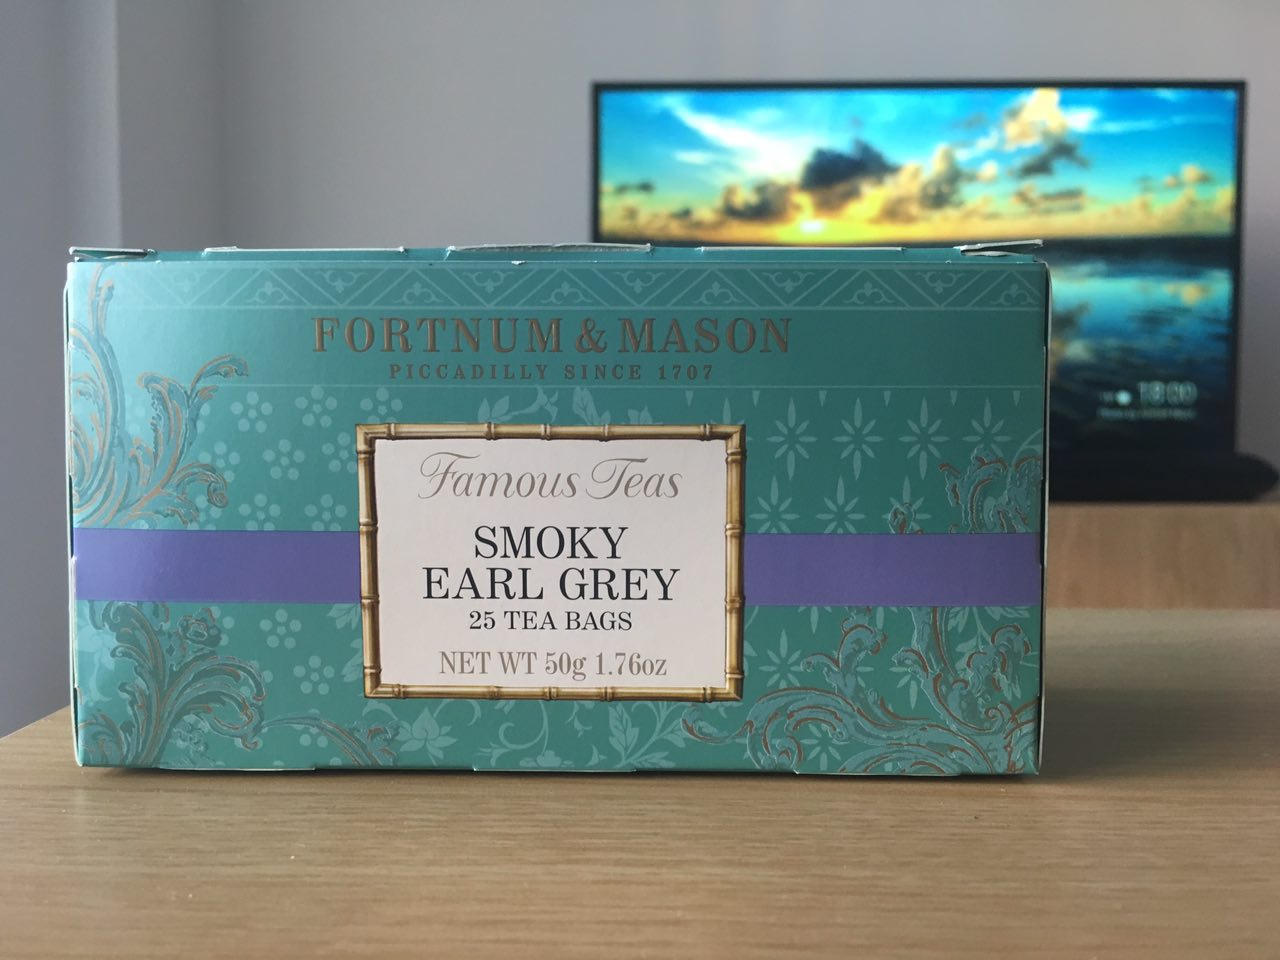 Fortnum & Mason Smoky Earl Grey Tea